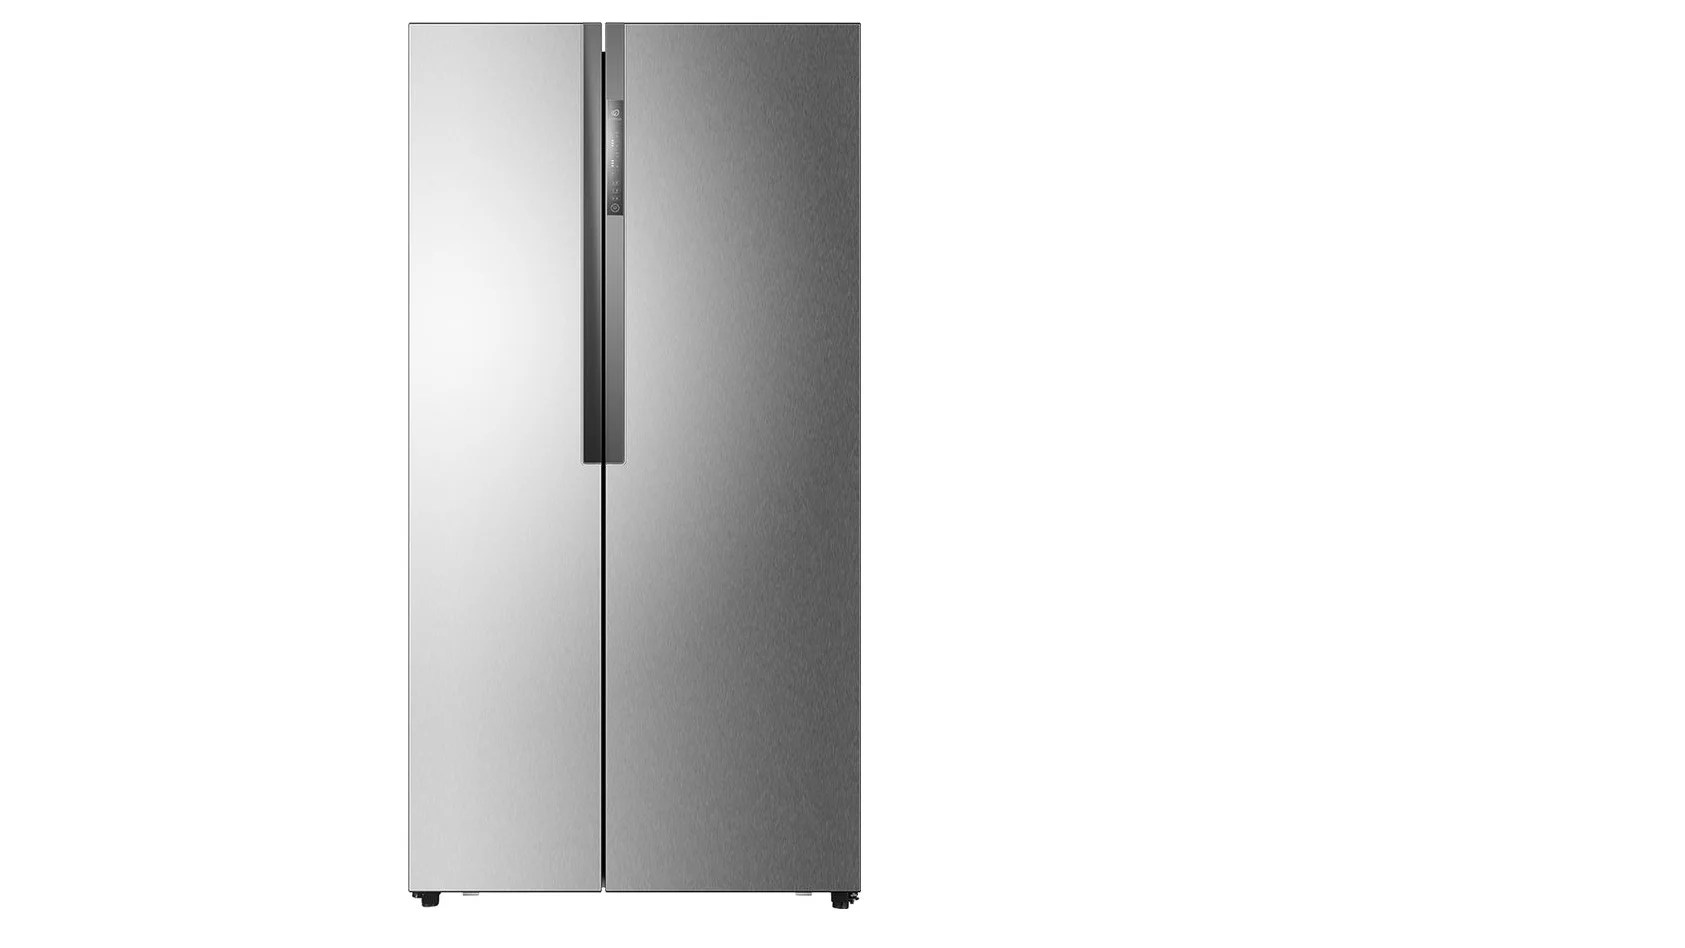 Haier Hrf-521ds6 Best Fridge Freezer 2018 The Best Fridge Freezers To Buy